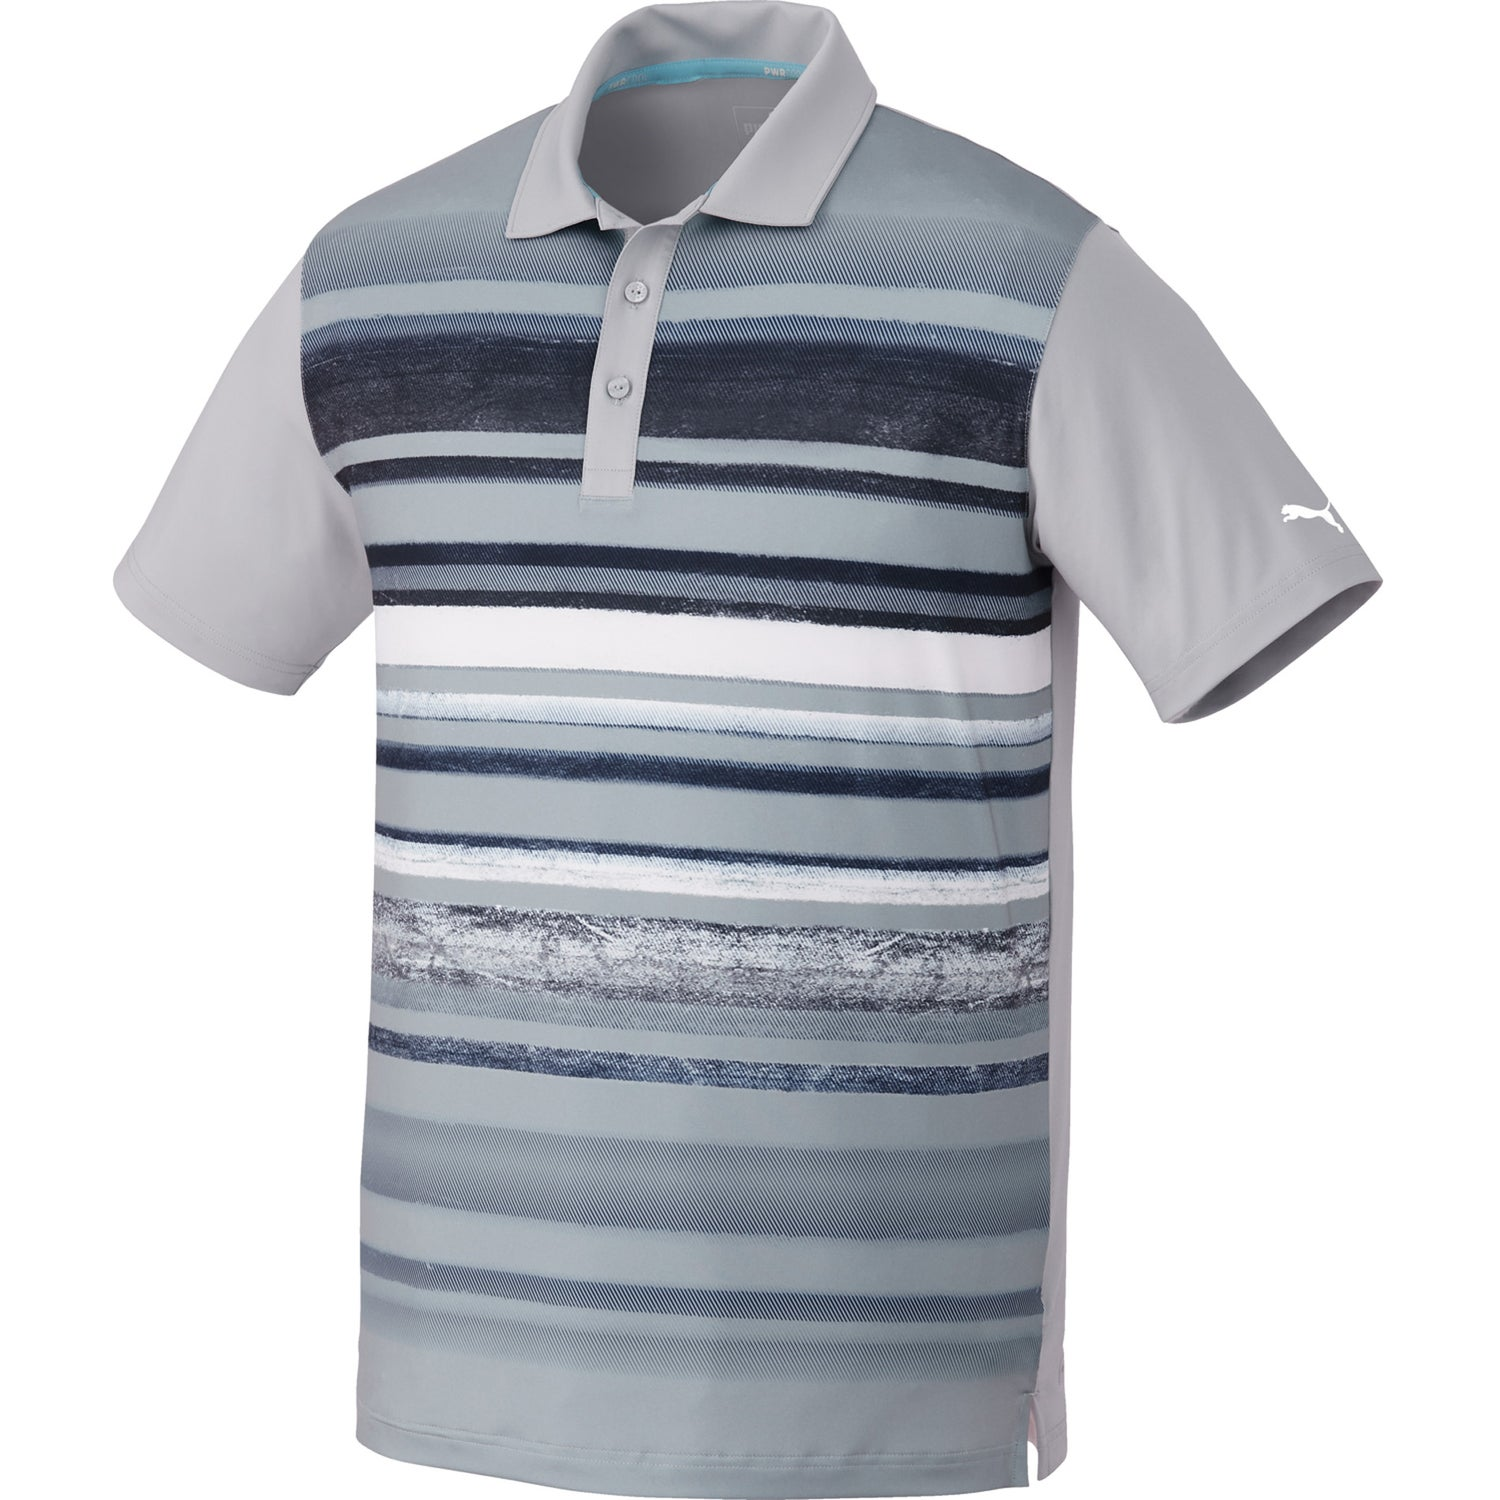 Promotional Mens Puma Washed Stripe Pc Polo Shirt By Trimarks With